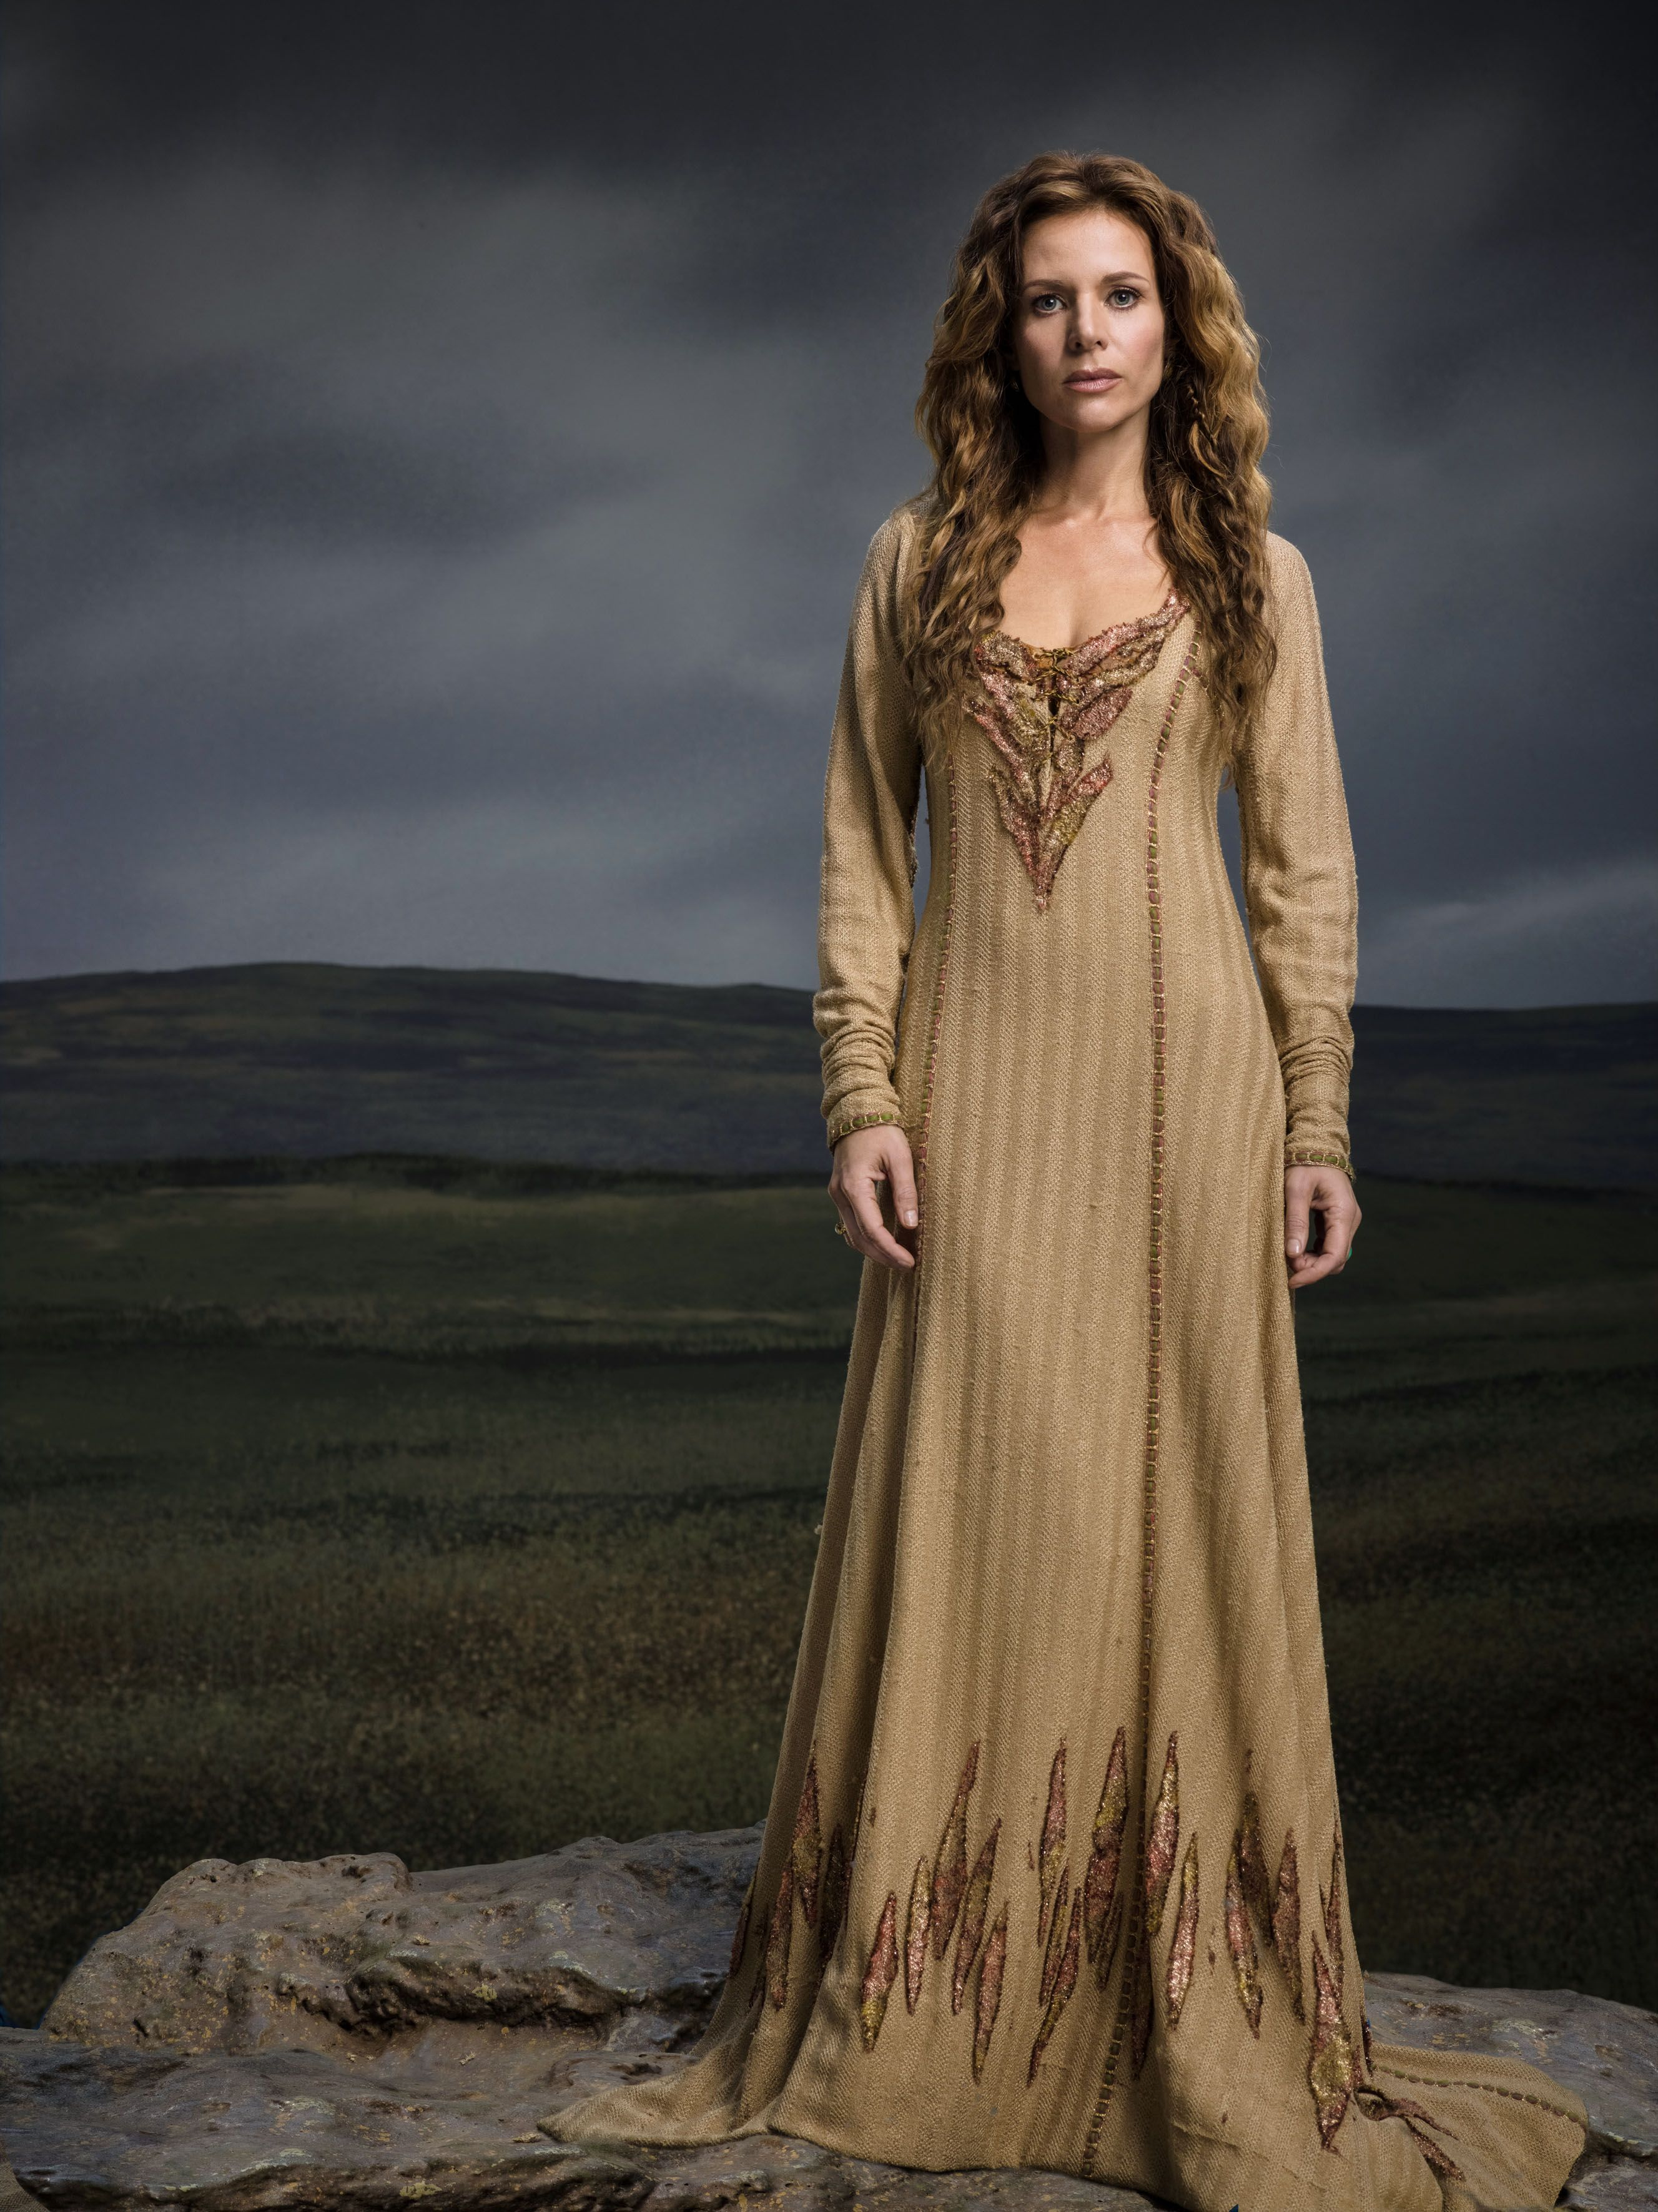 Beautiful, long, earthy toned gown. Possible a night gown.